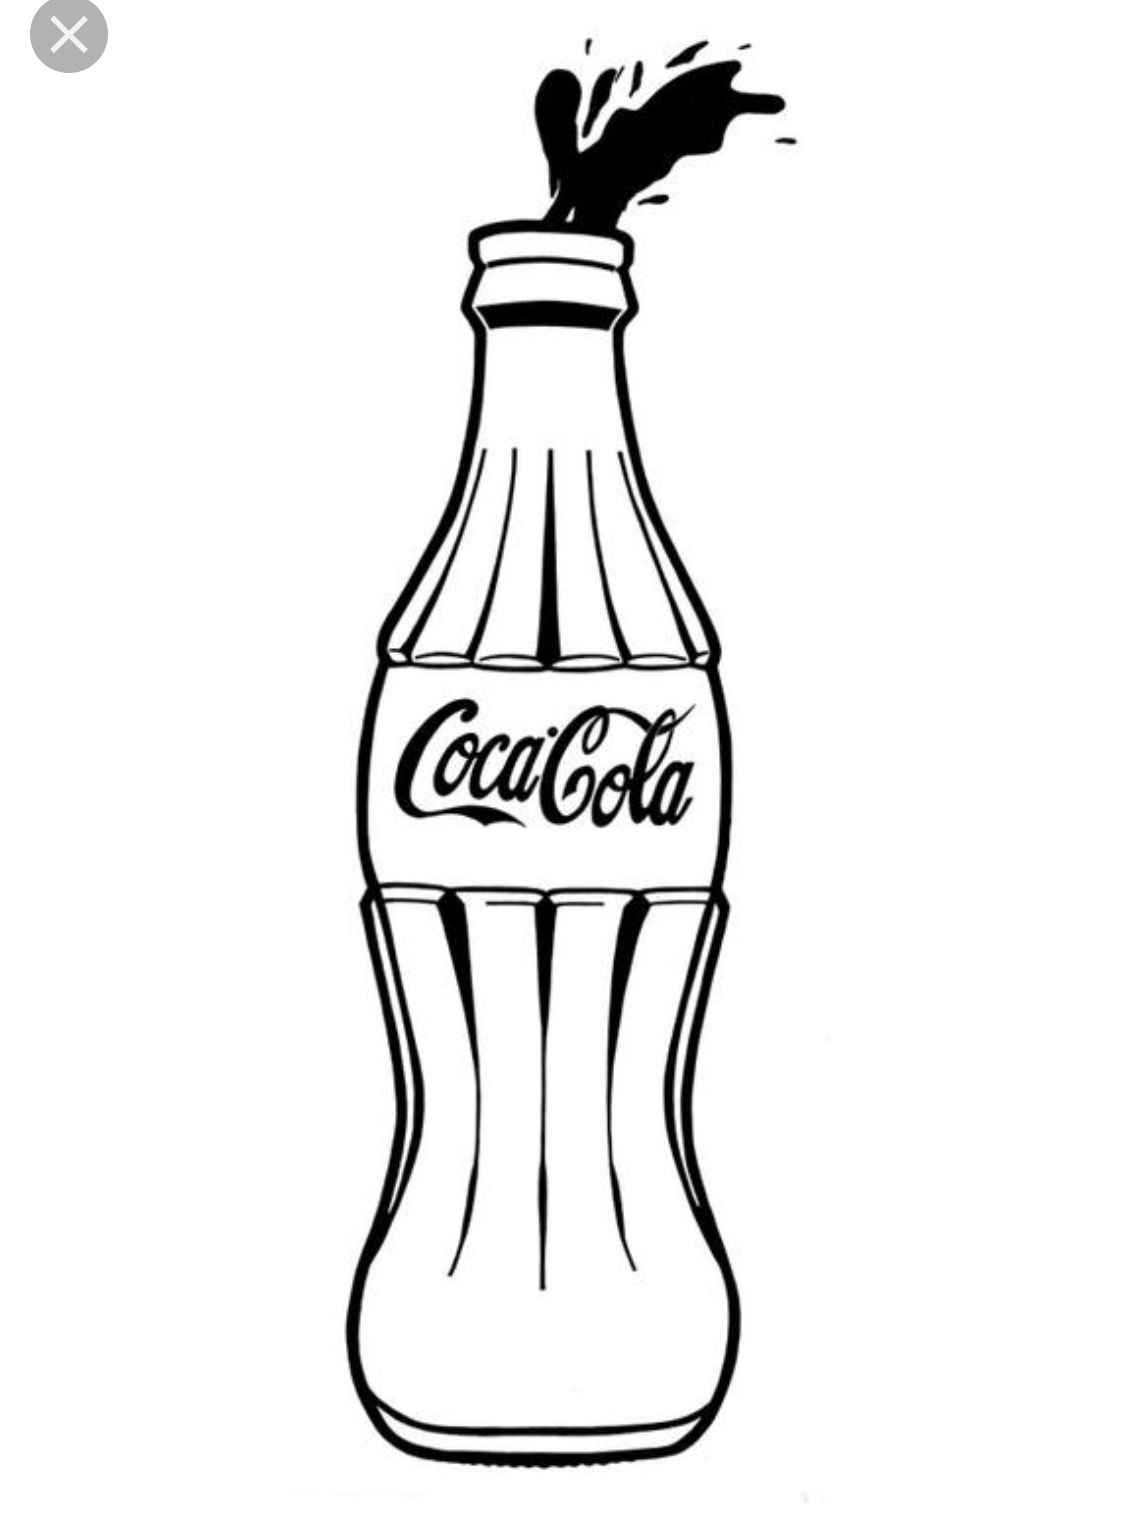 Coca cola bottle clipart black and white clipart black and white Pin by Kellam McMichael on Embroidery | Coca cola bottles, Glass ... clipart black and white